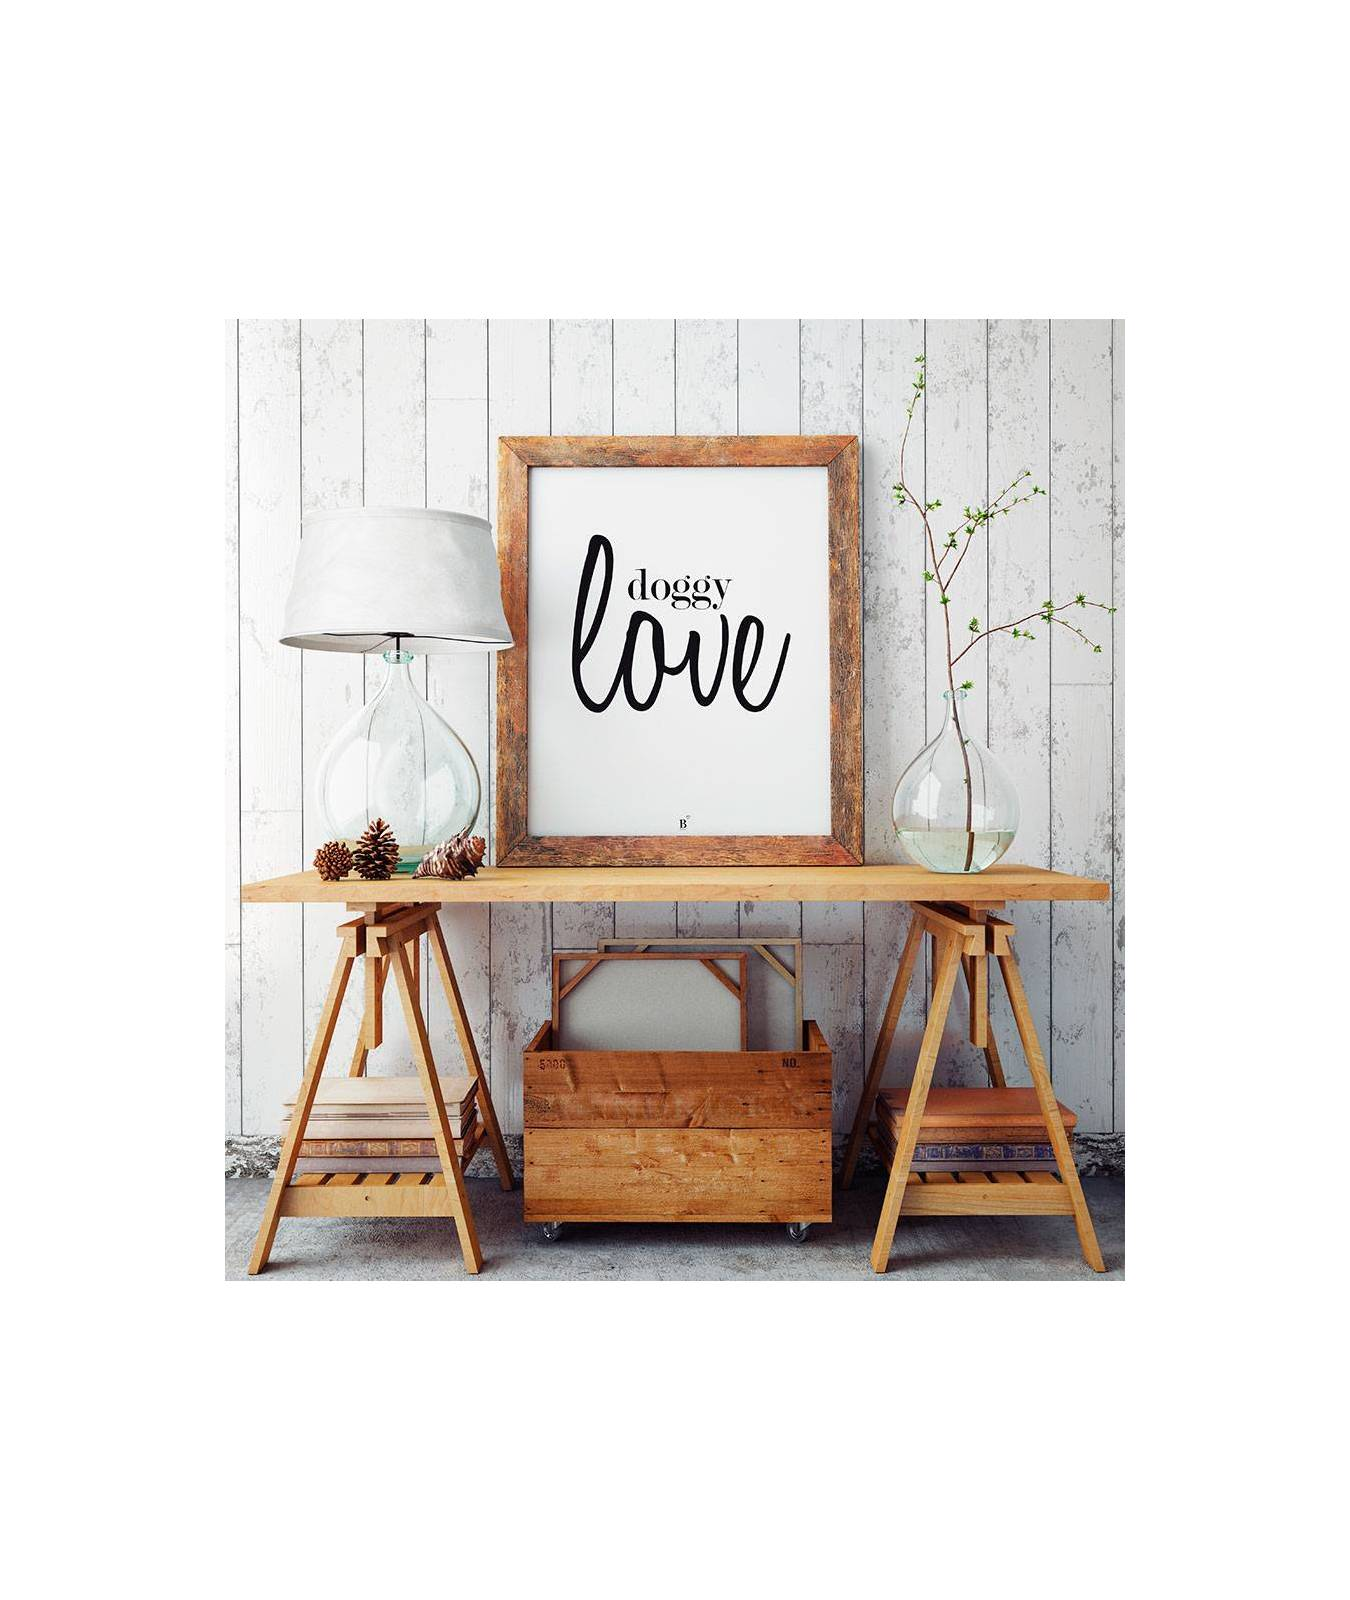 L mina decorativa brott barcelona doggy love para dog lovers - Laminas decorativas para pared ...